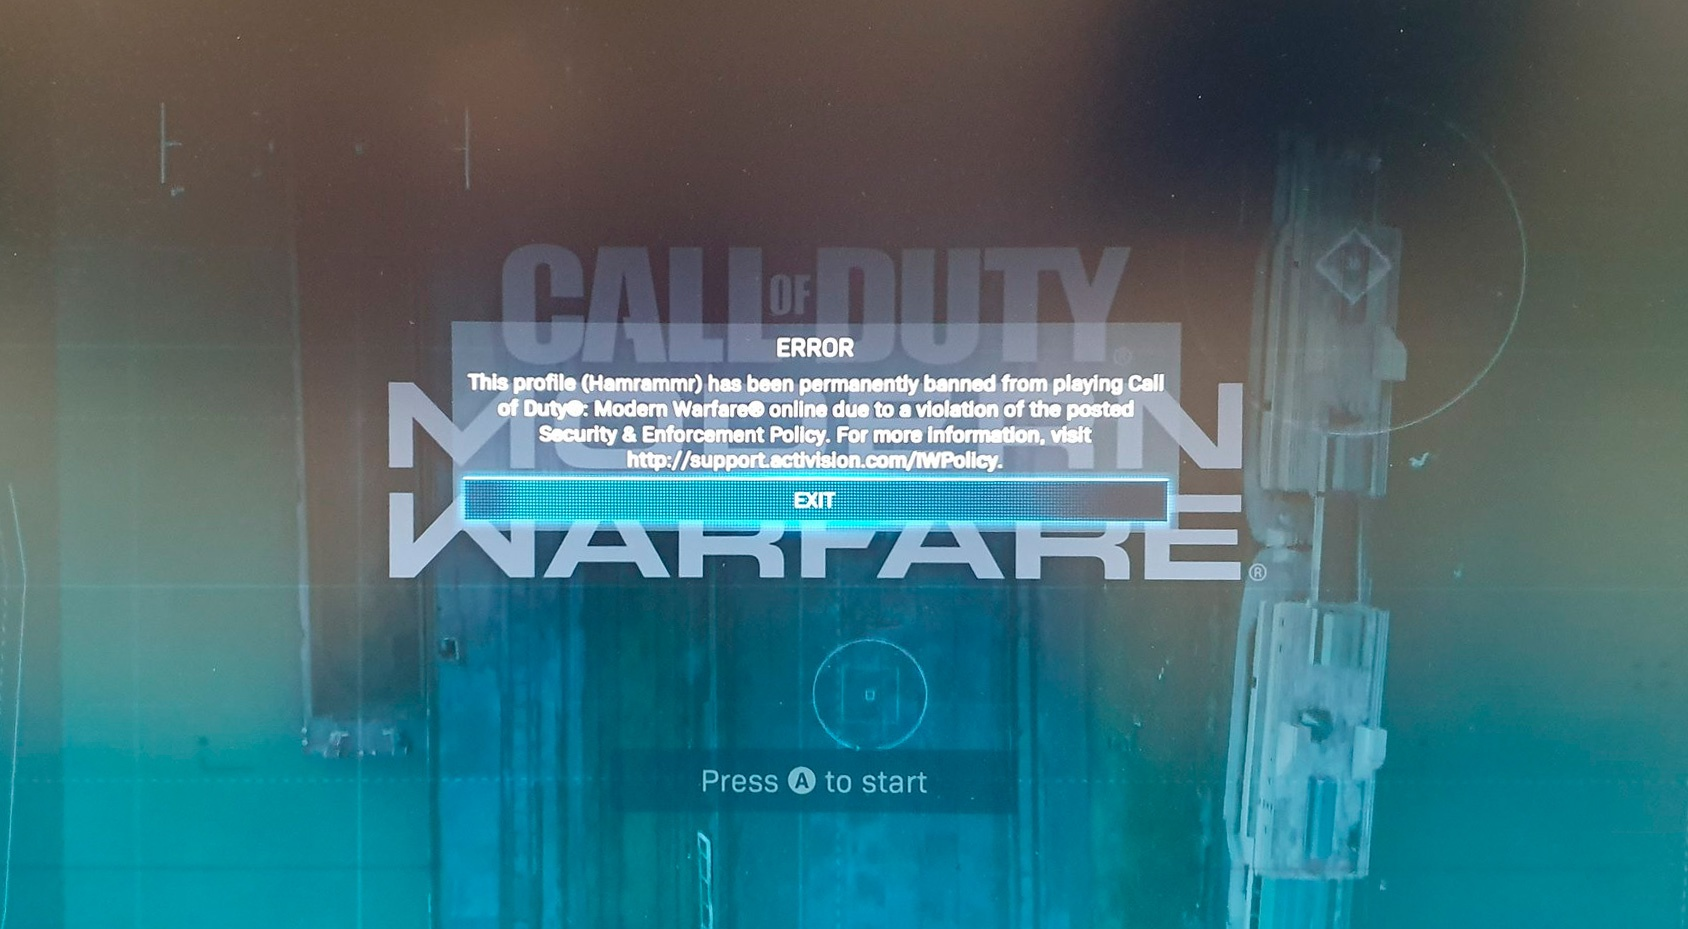 They ban a user who entered the Battle Royale of Call of Duty unintentionally